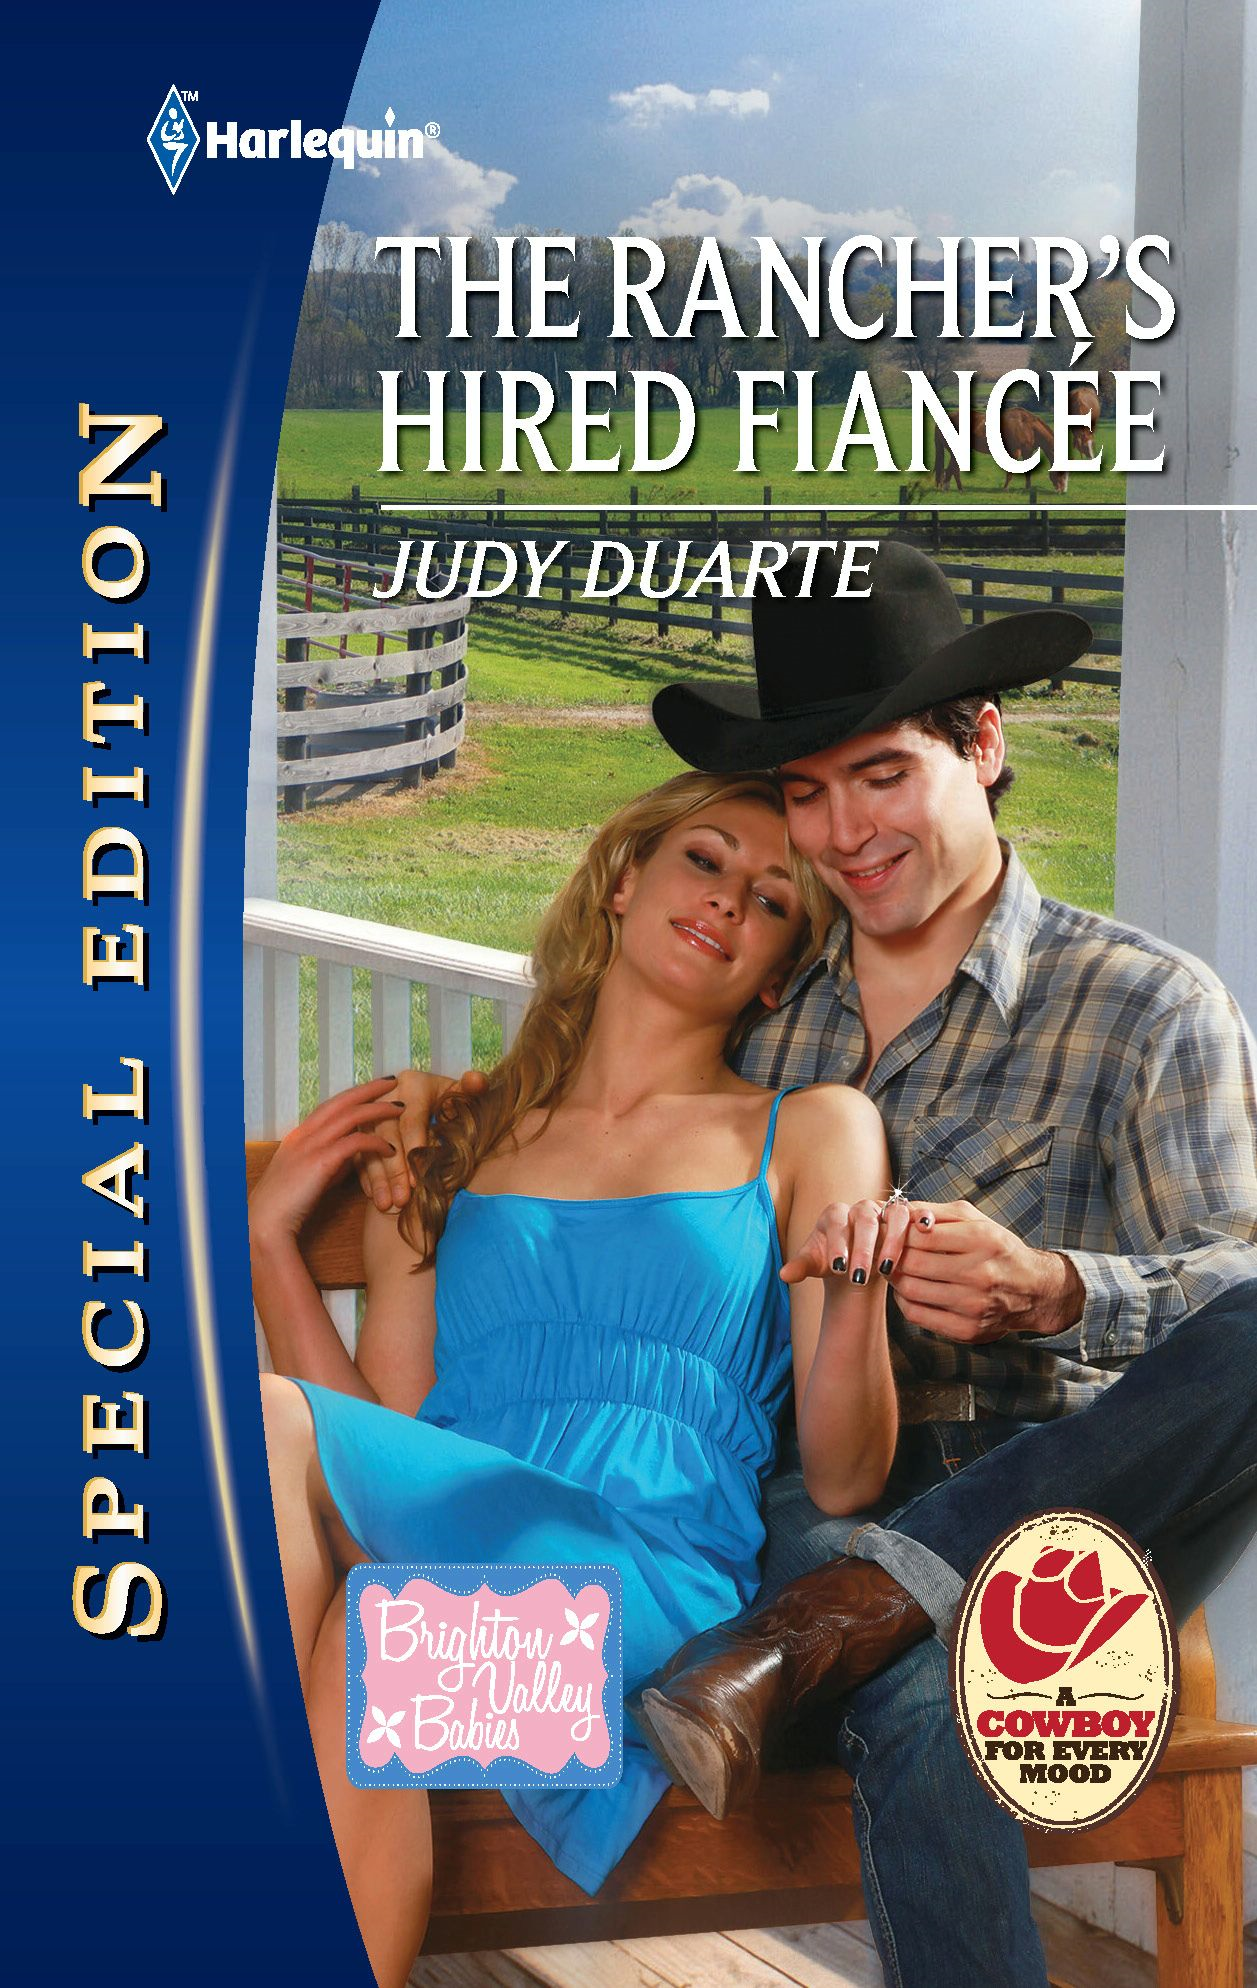 The Rancher's Hired Fiancee By: Judy Duarte